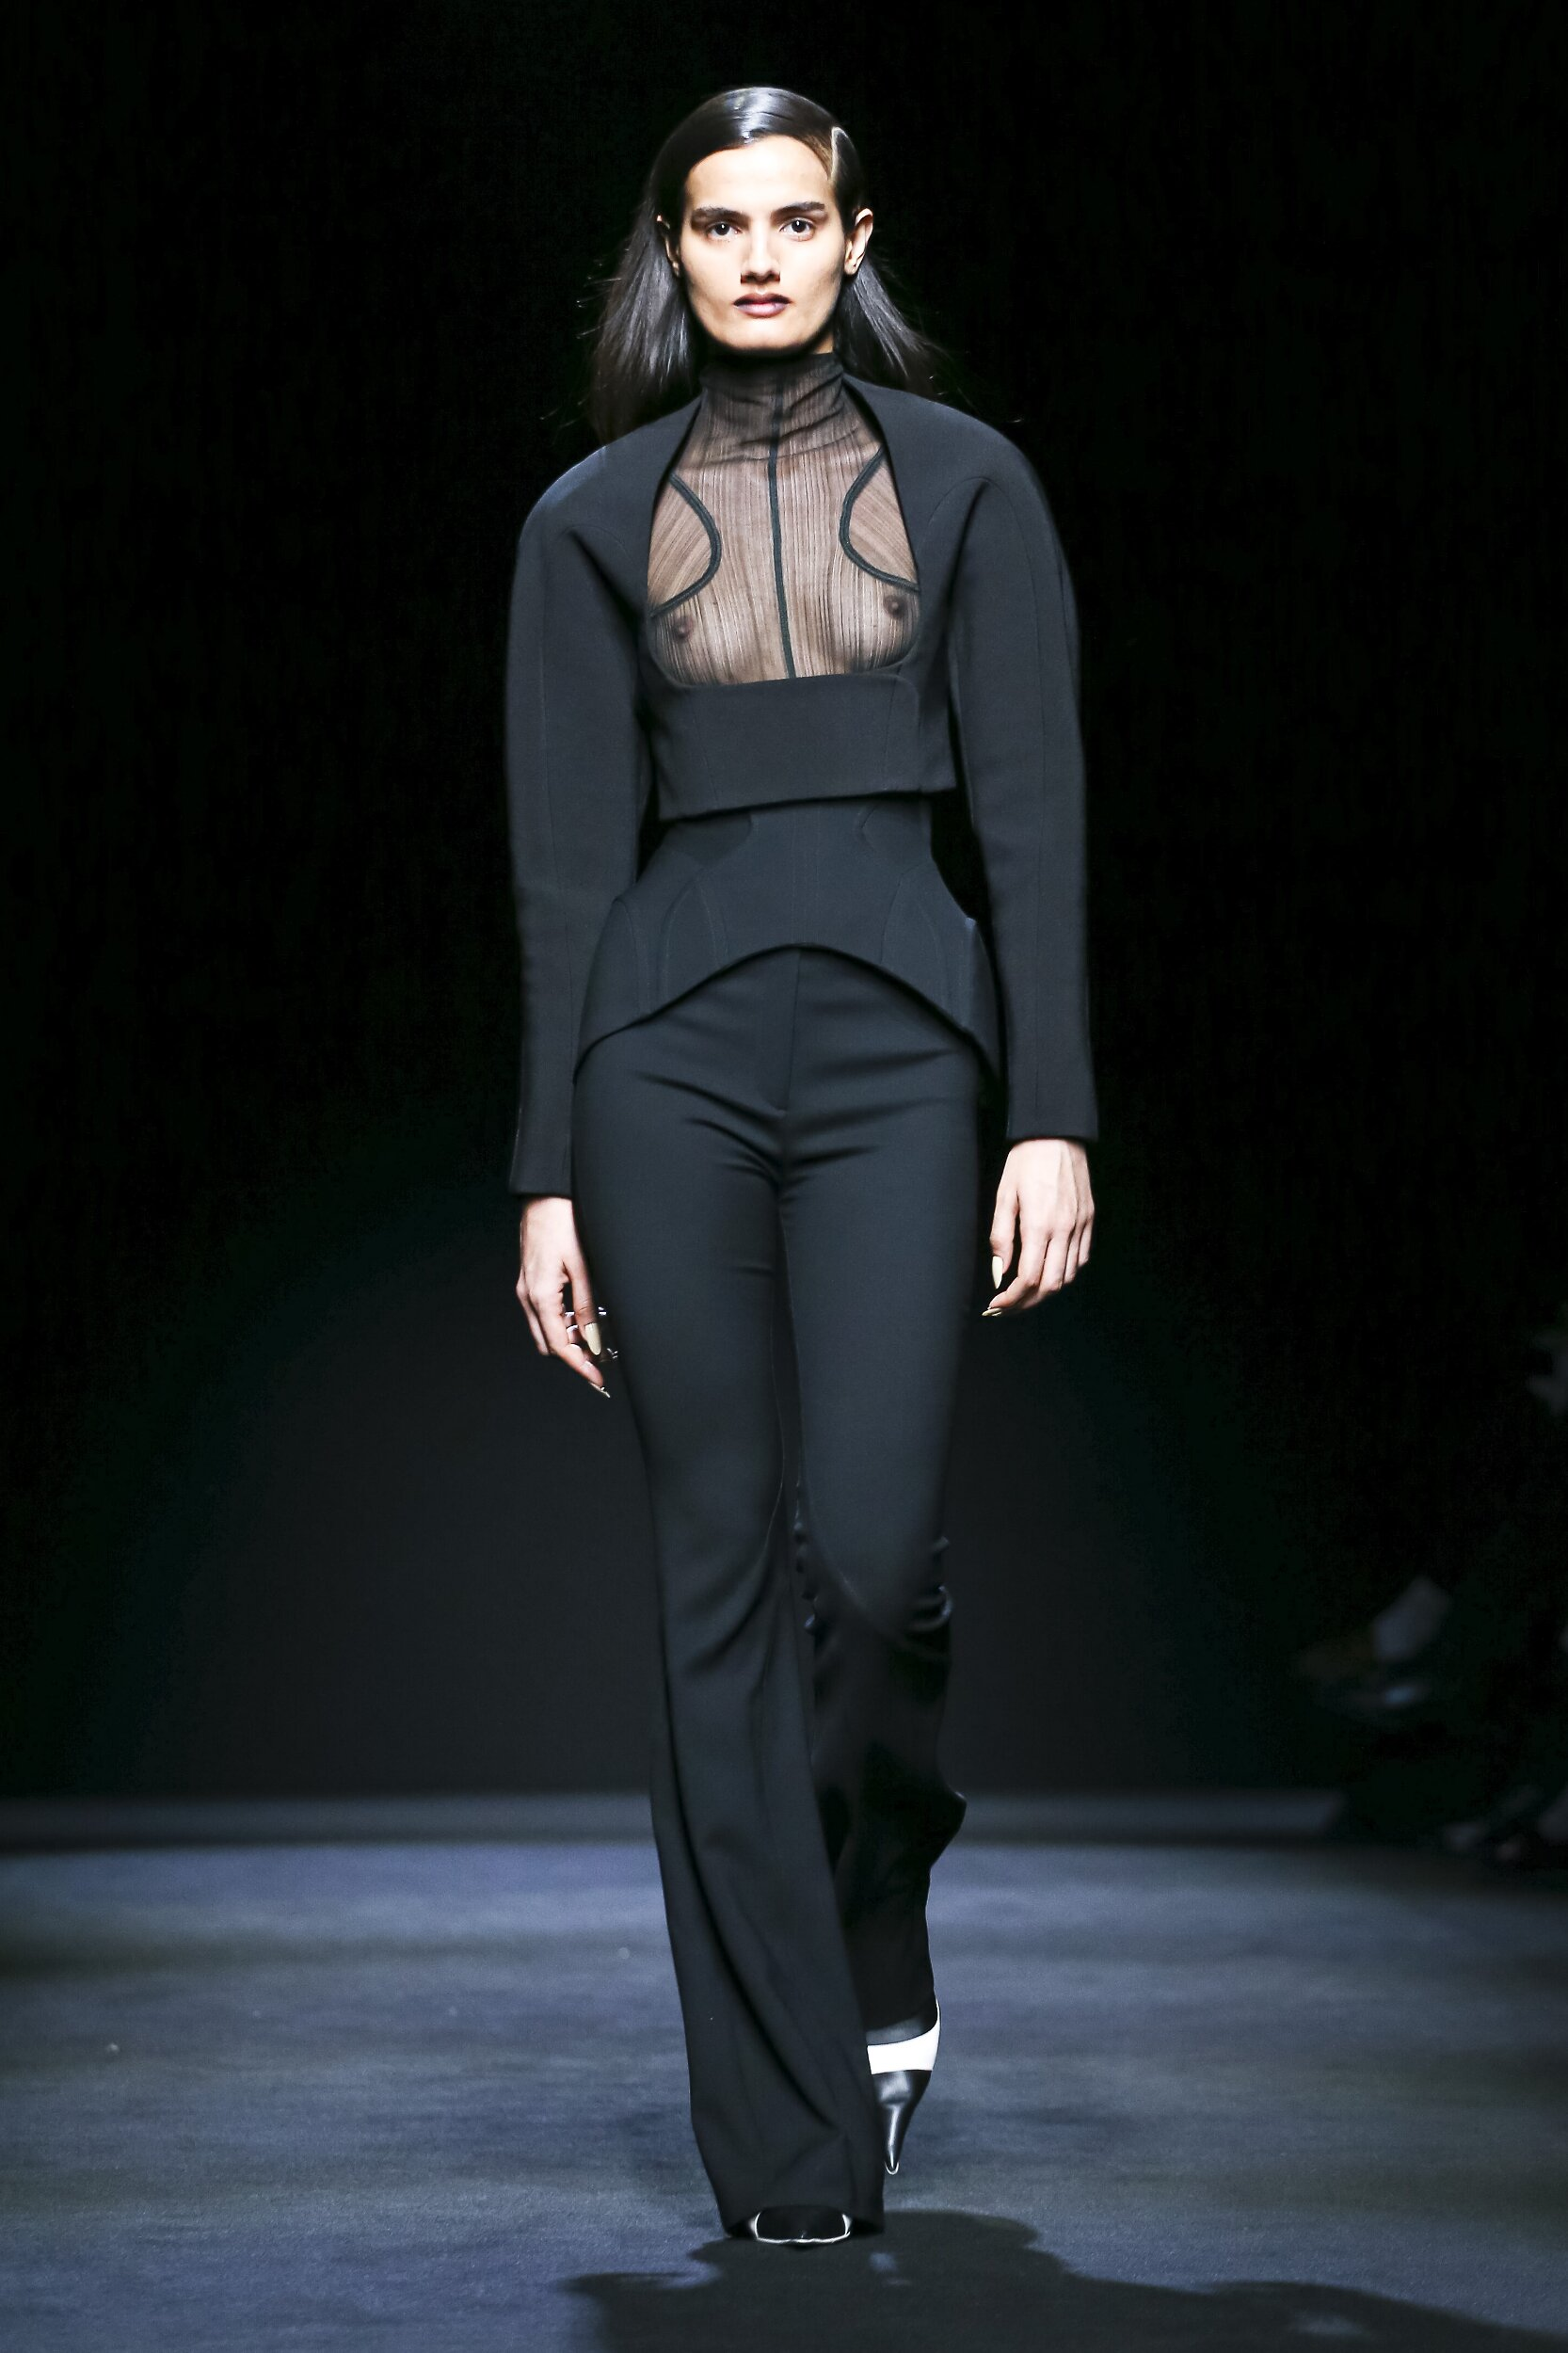 Fashion Model Mugler Catwalk